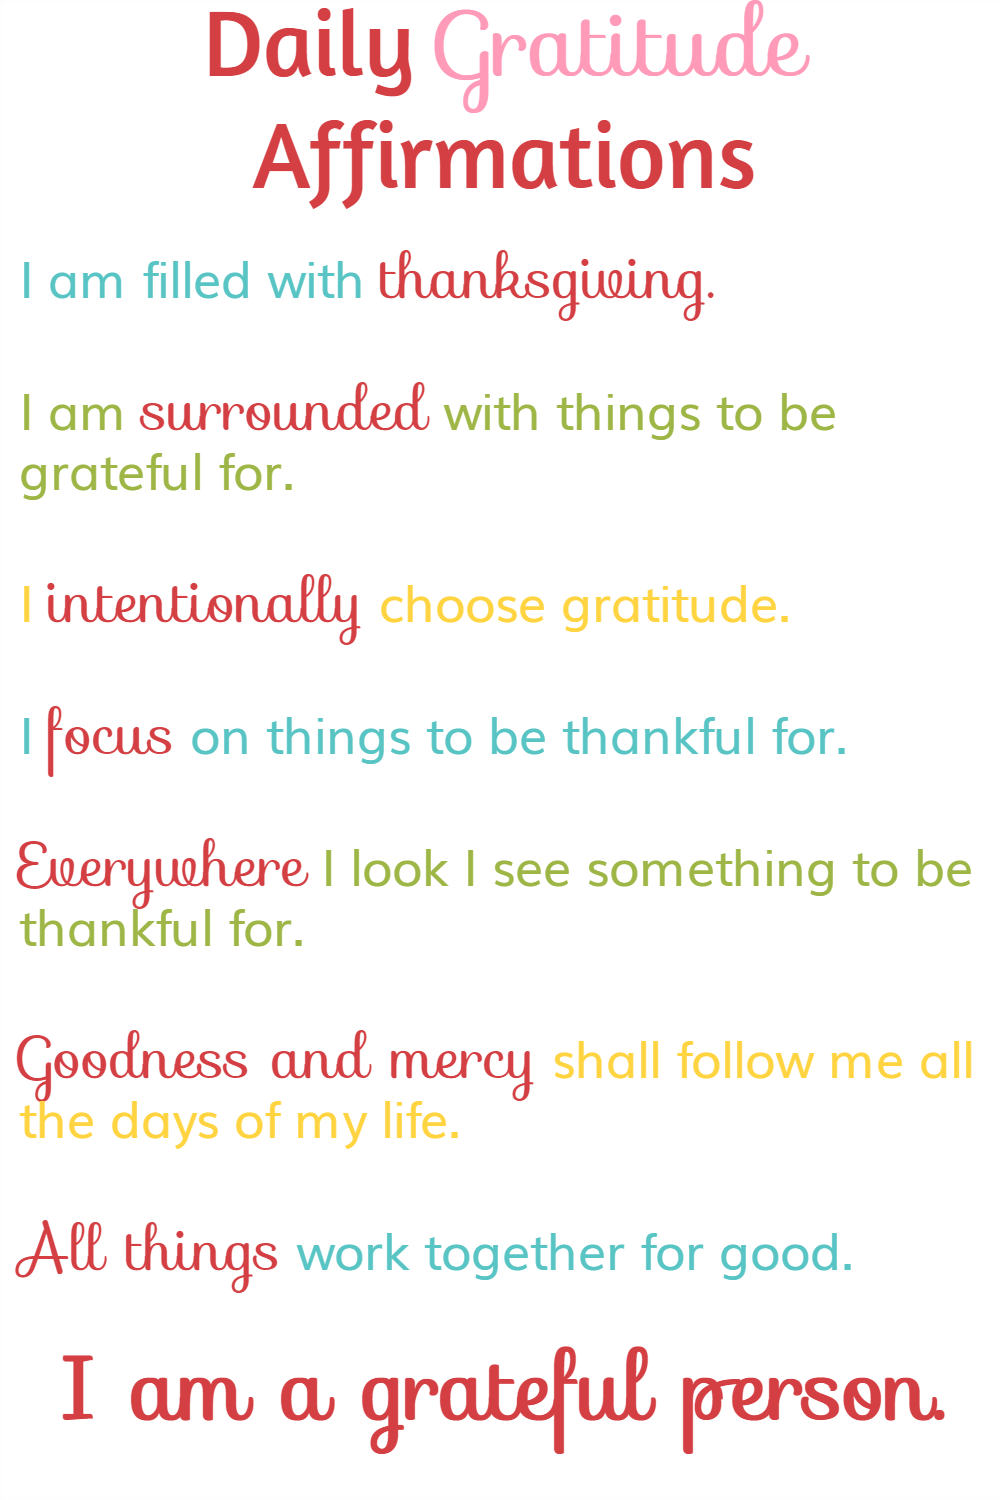 How To Change Your Life With Daily Gratitude Affirmations